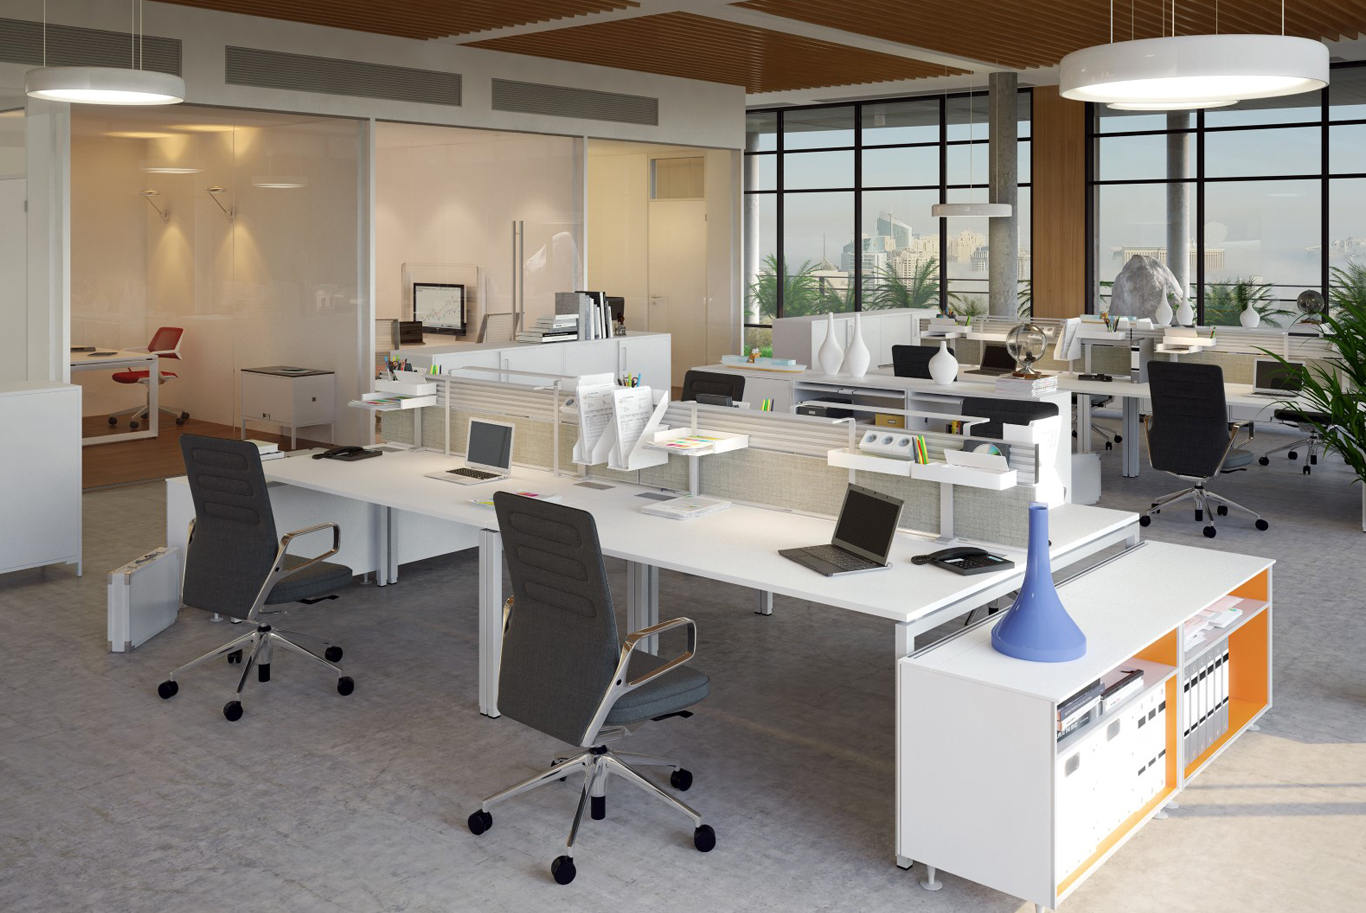 virtual office shared miami for coworking private rent space